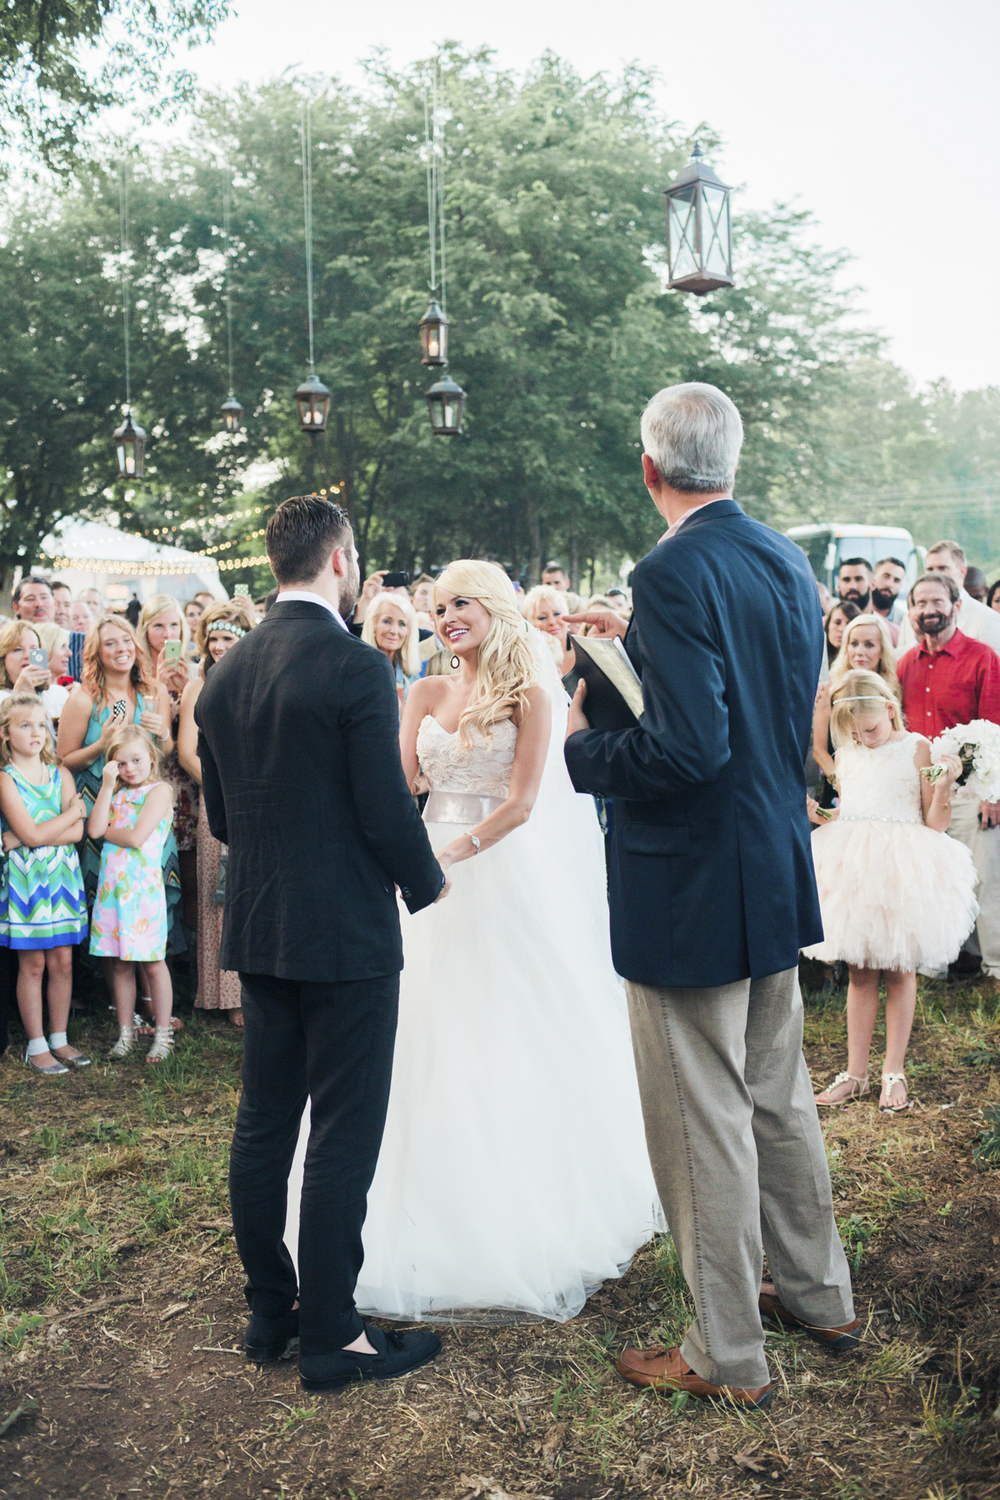 south_carolina_farm_wedding_rustic_chic_surprise_secret_luxe_wedding_bachelorette_emily_maynard_real_weddings-35.jpg